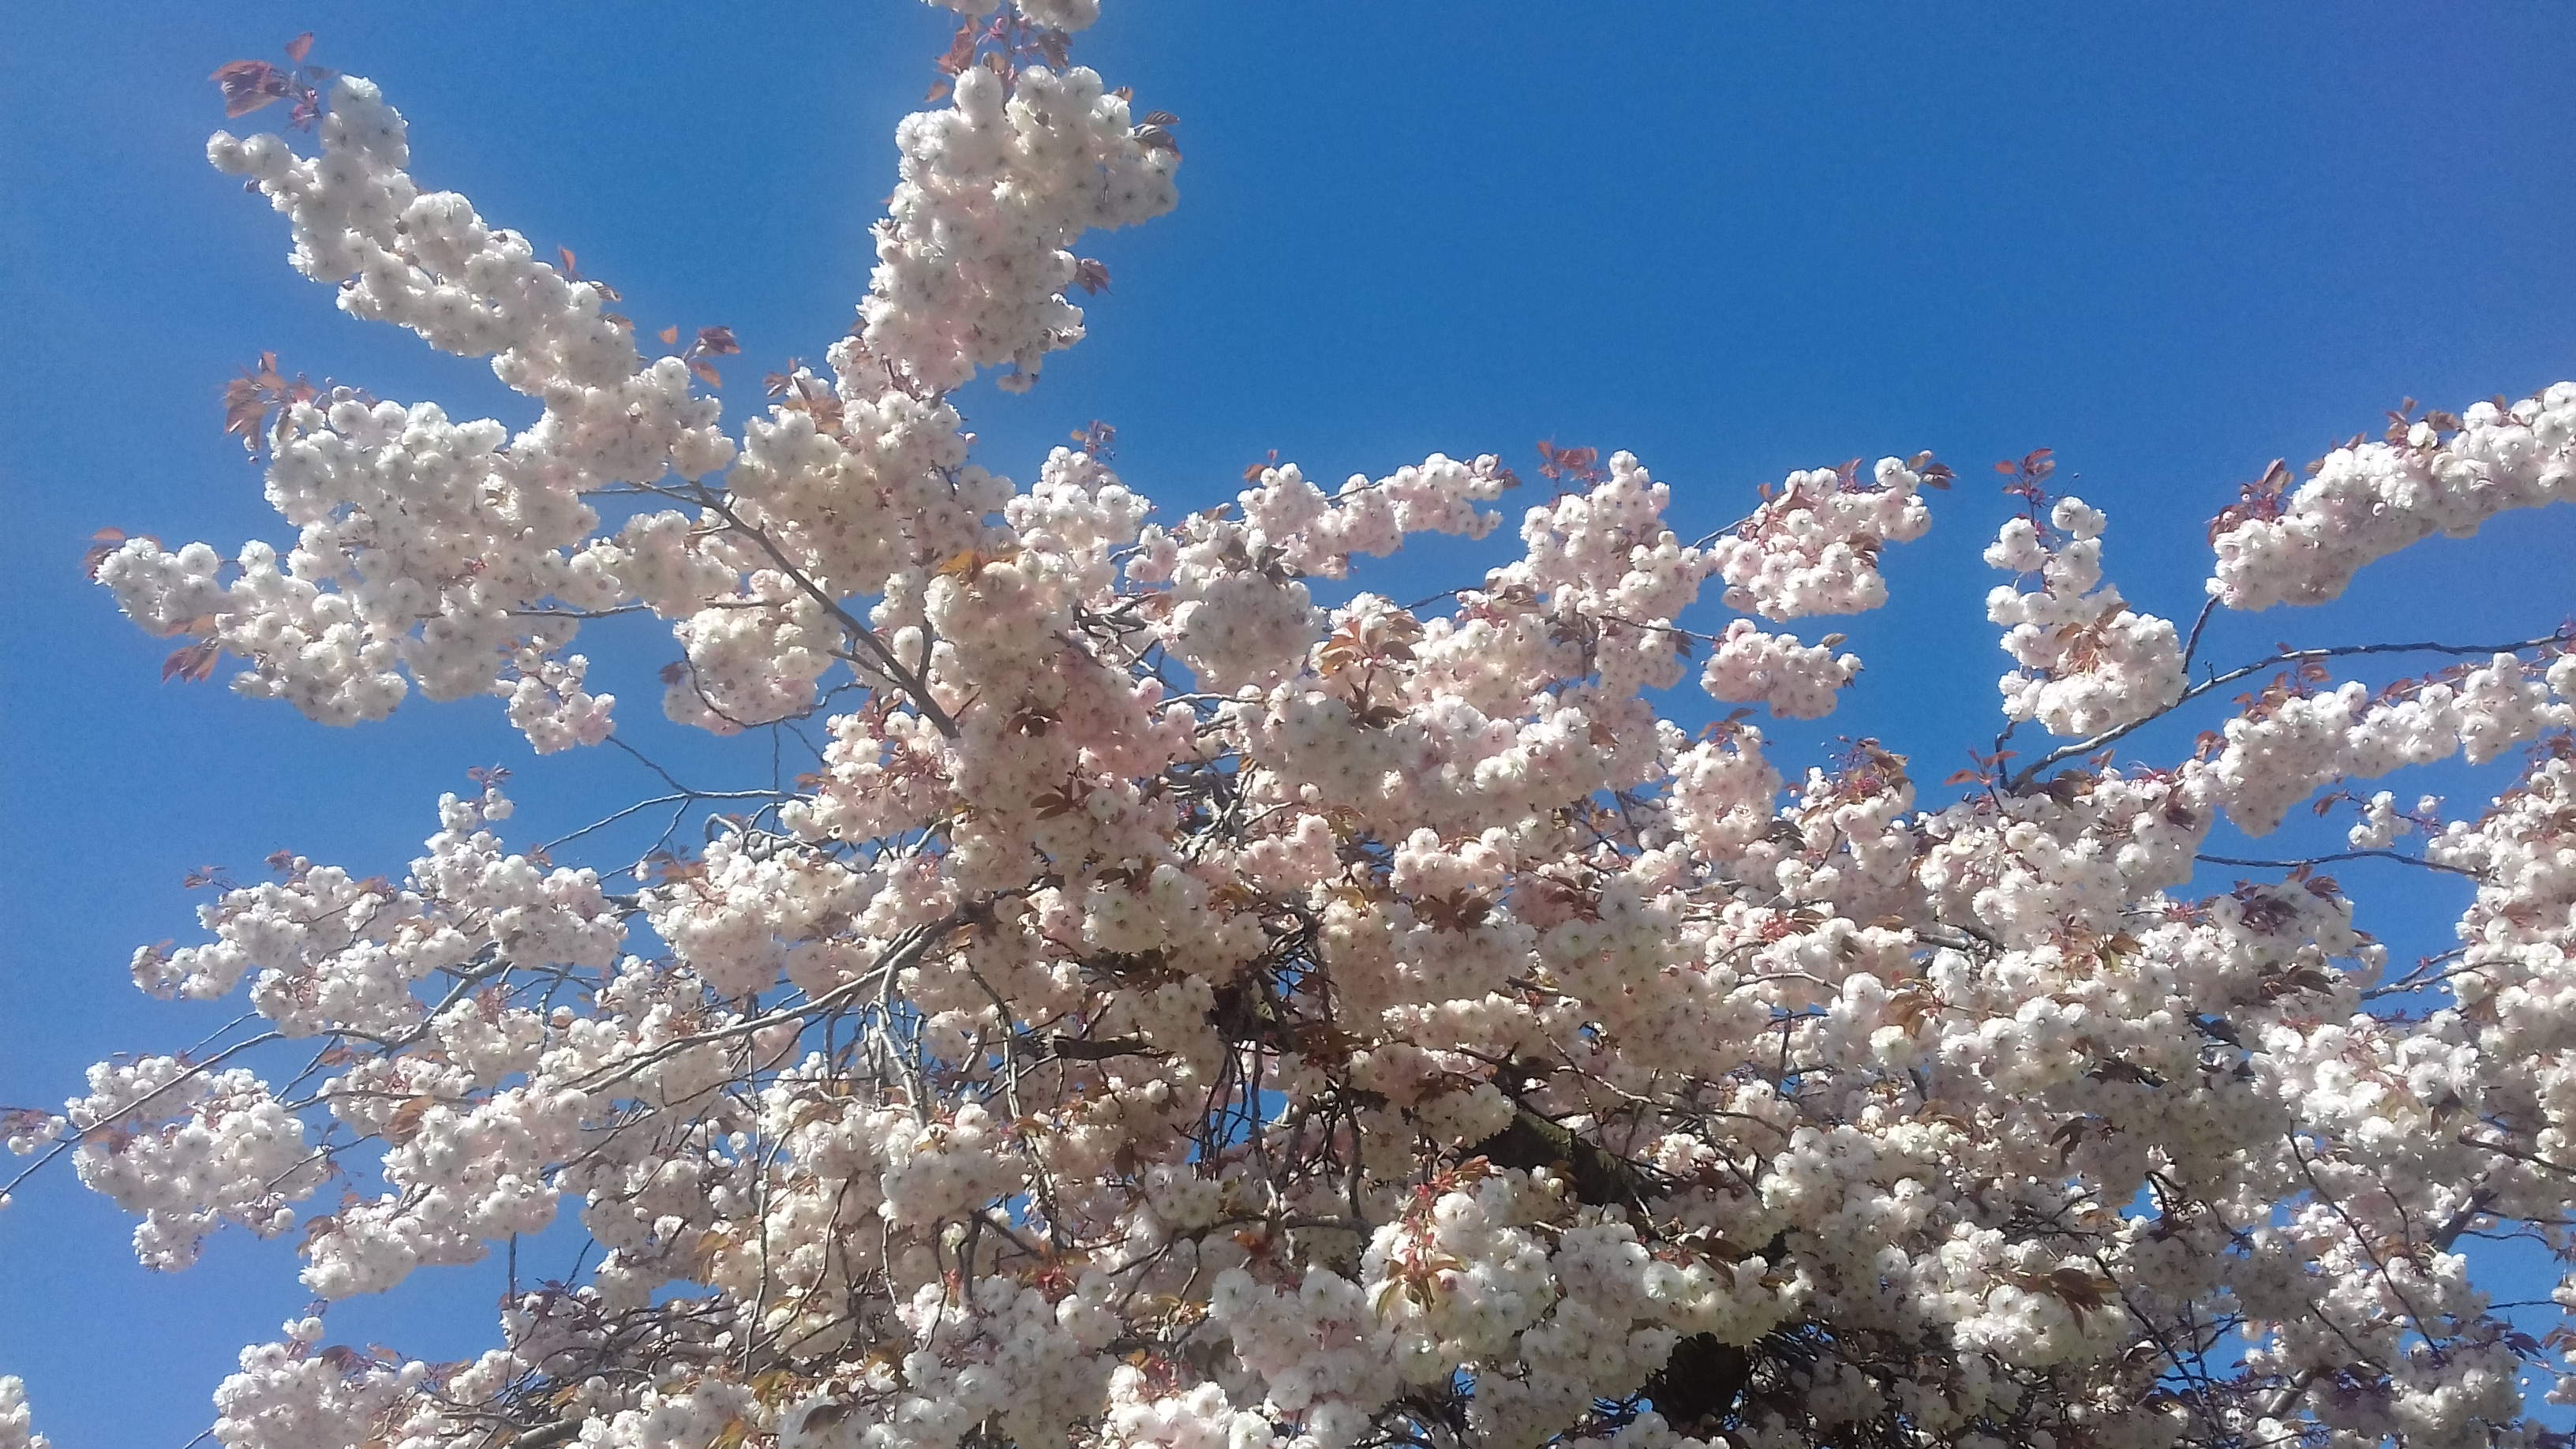 The top of a tree covered in pink cherry blossom against a bright blue sky